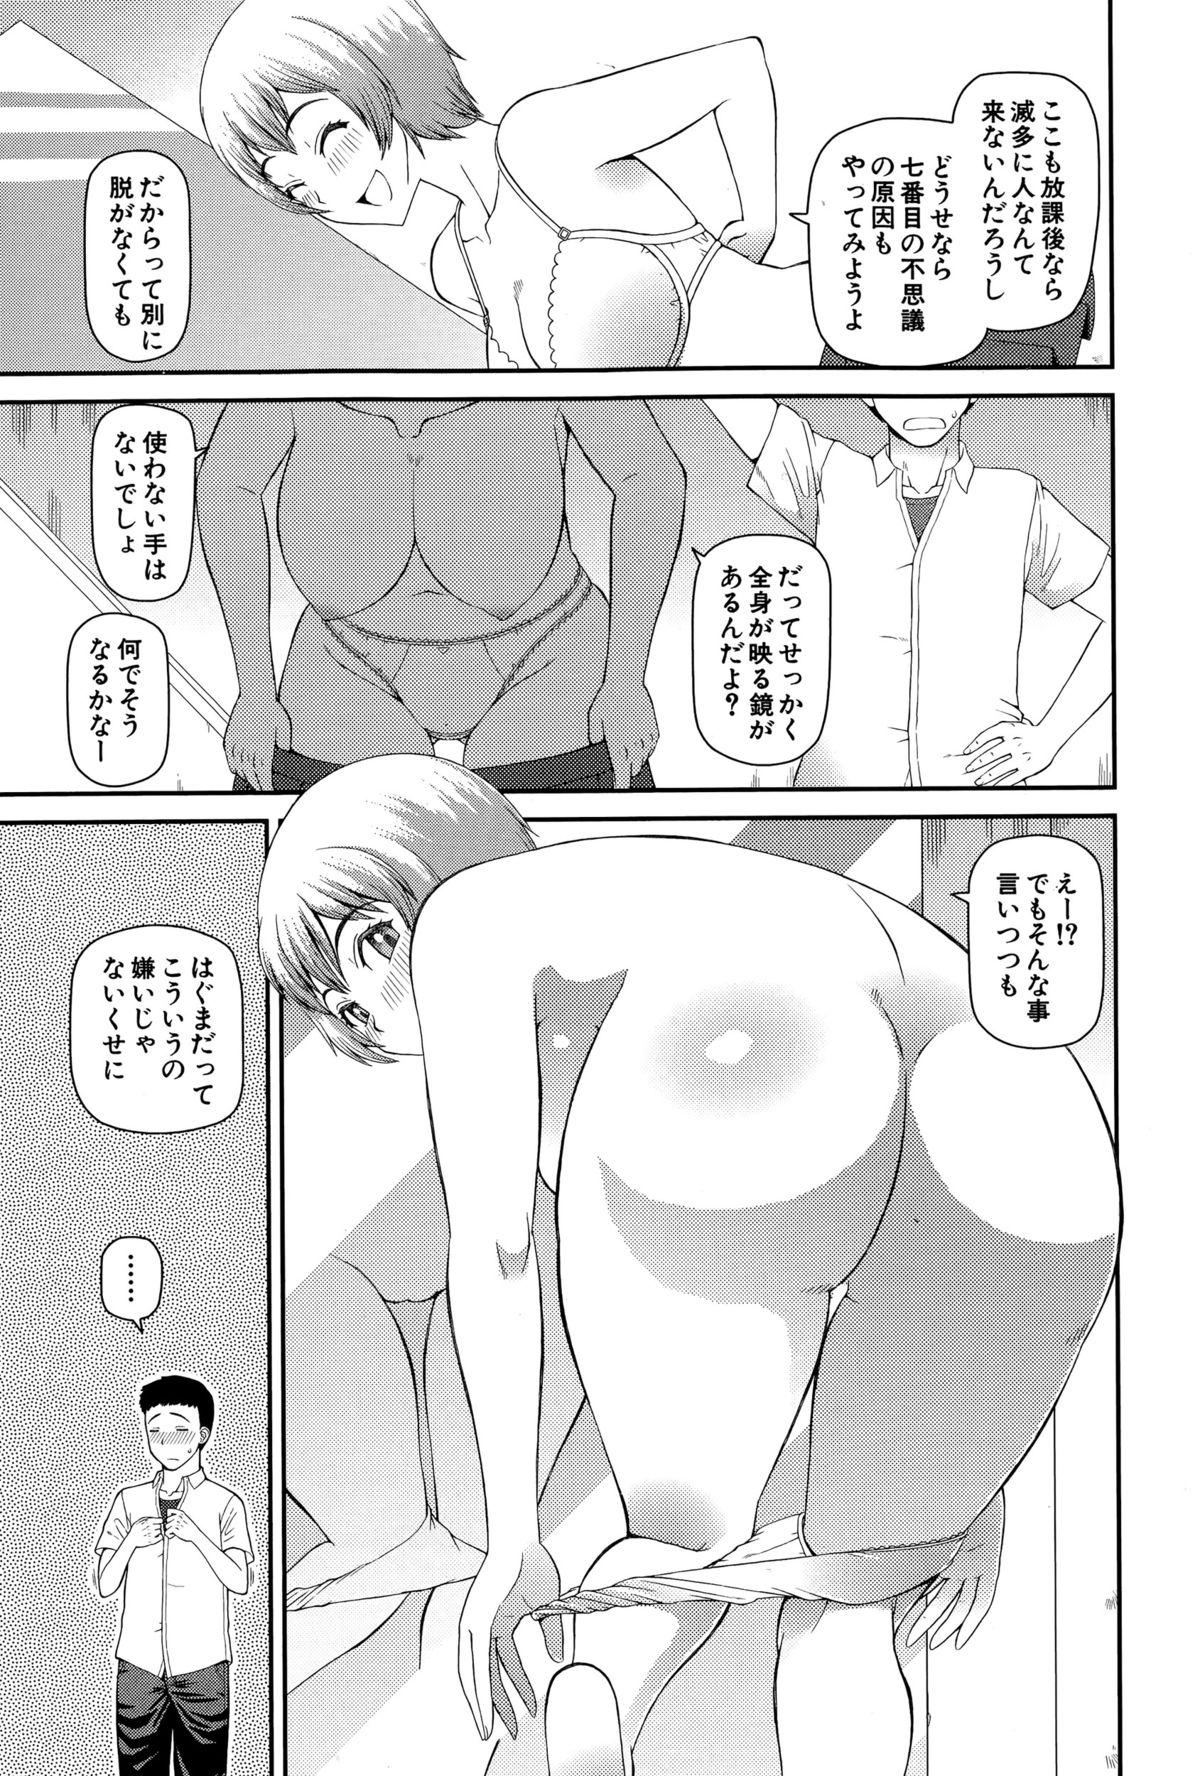 BUSTER COMIC 2015-07 202